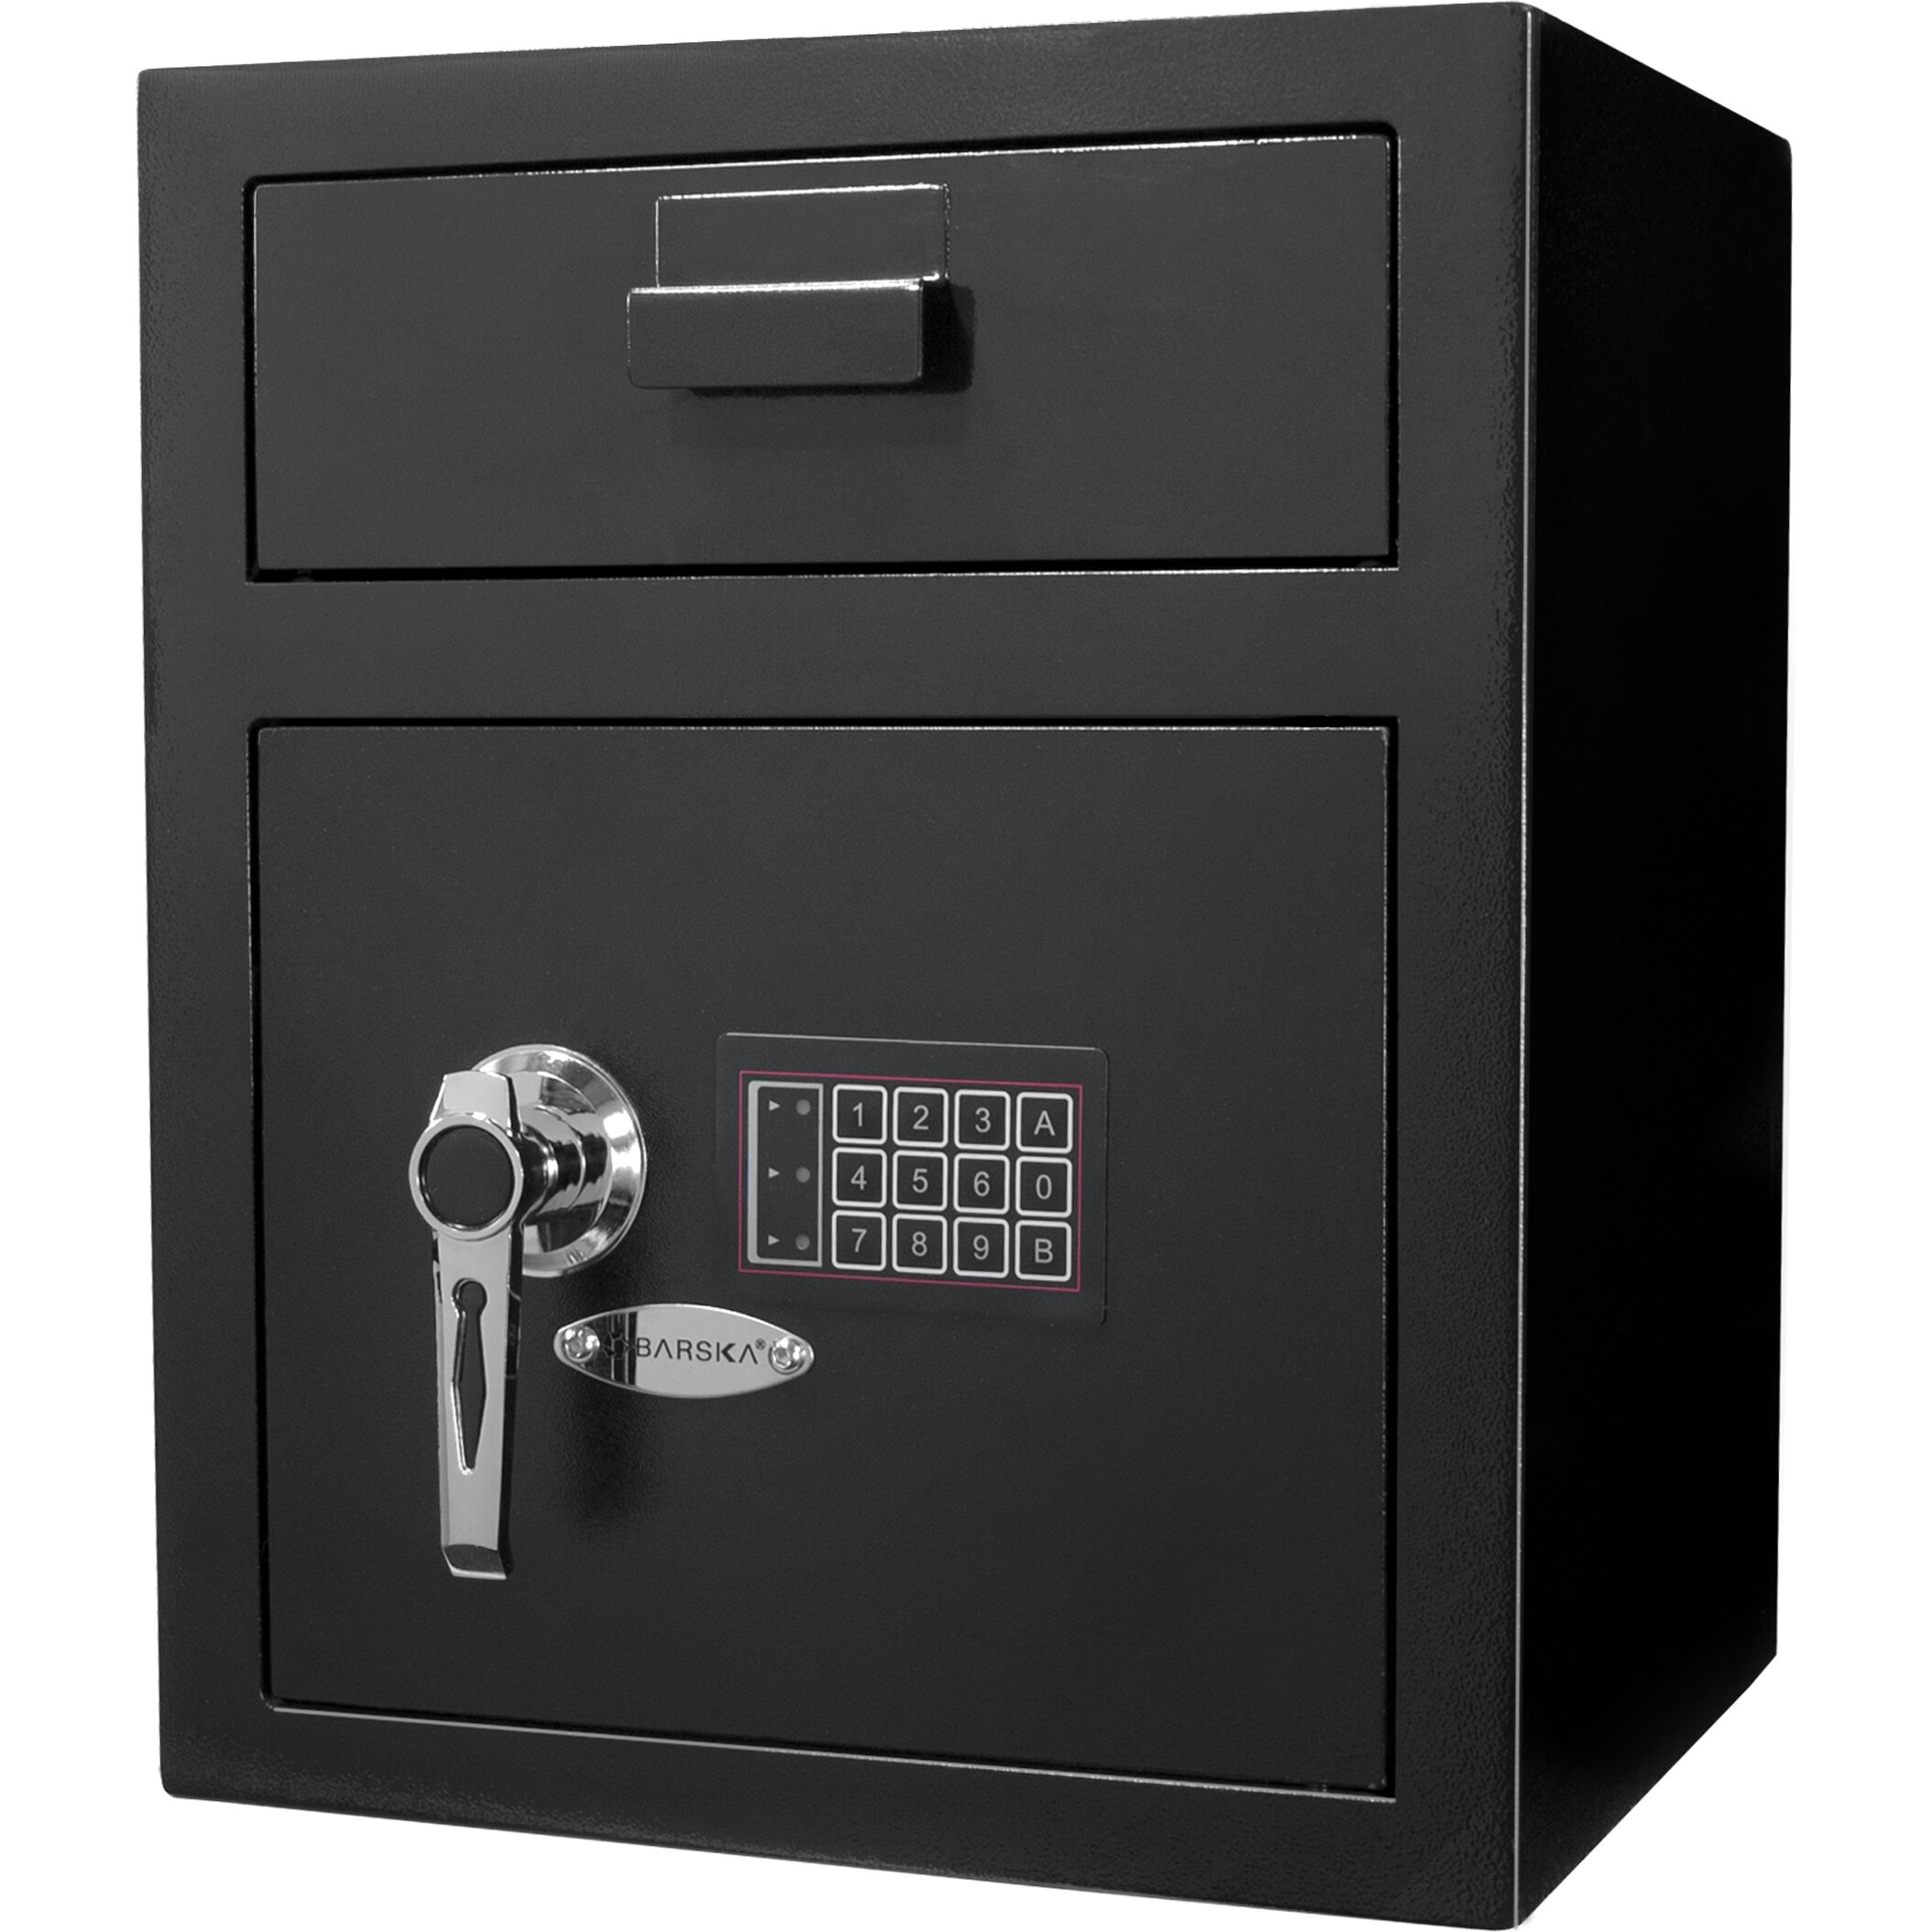 barska keypad lock large depository safe reviews wayfair. Black Bedroom Furniture Sets. Home Design Ideas